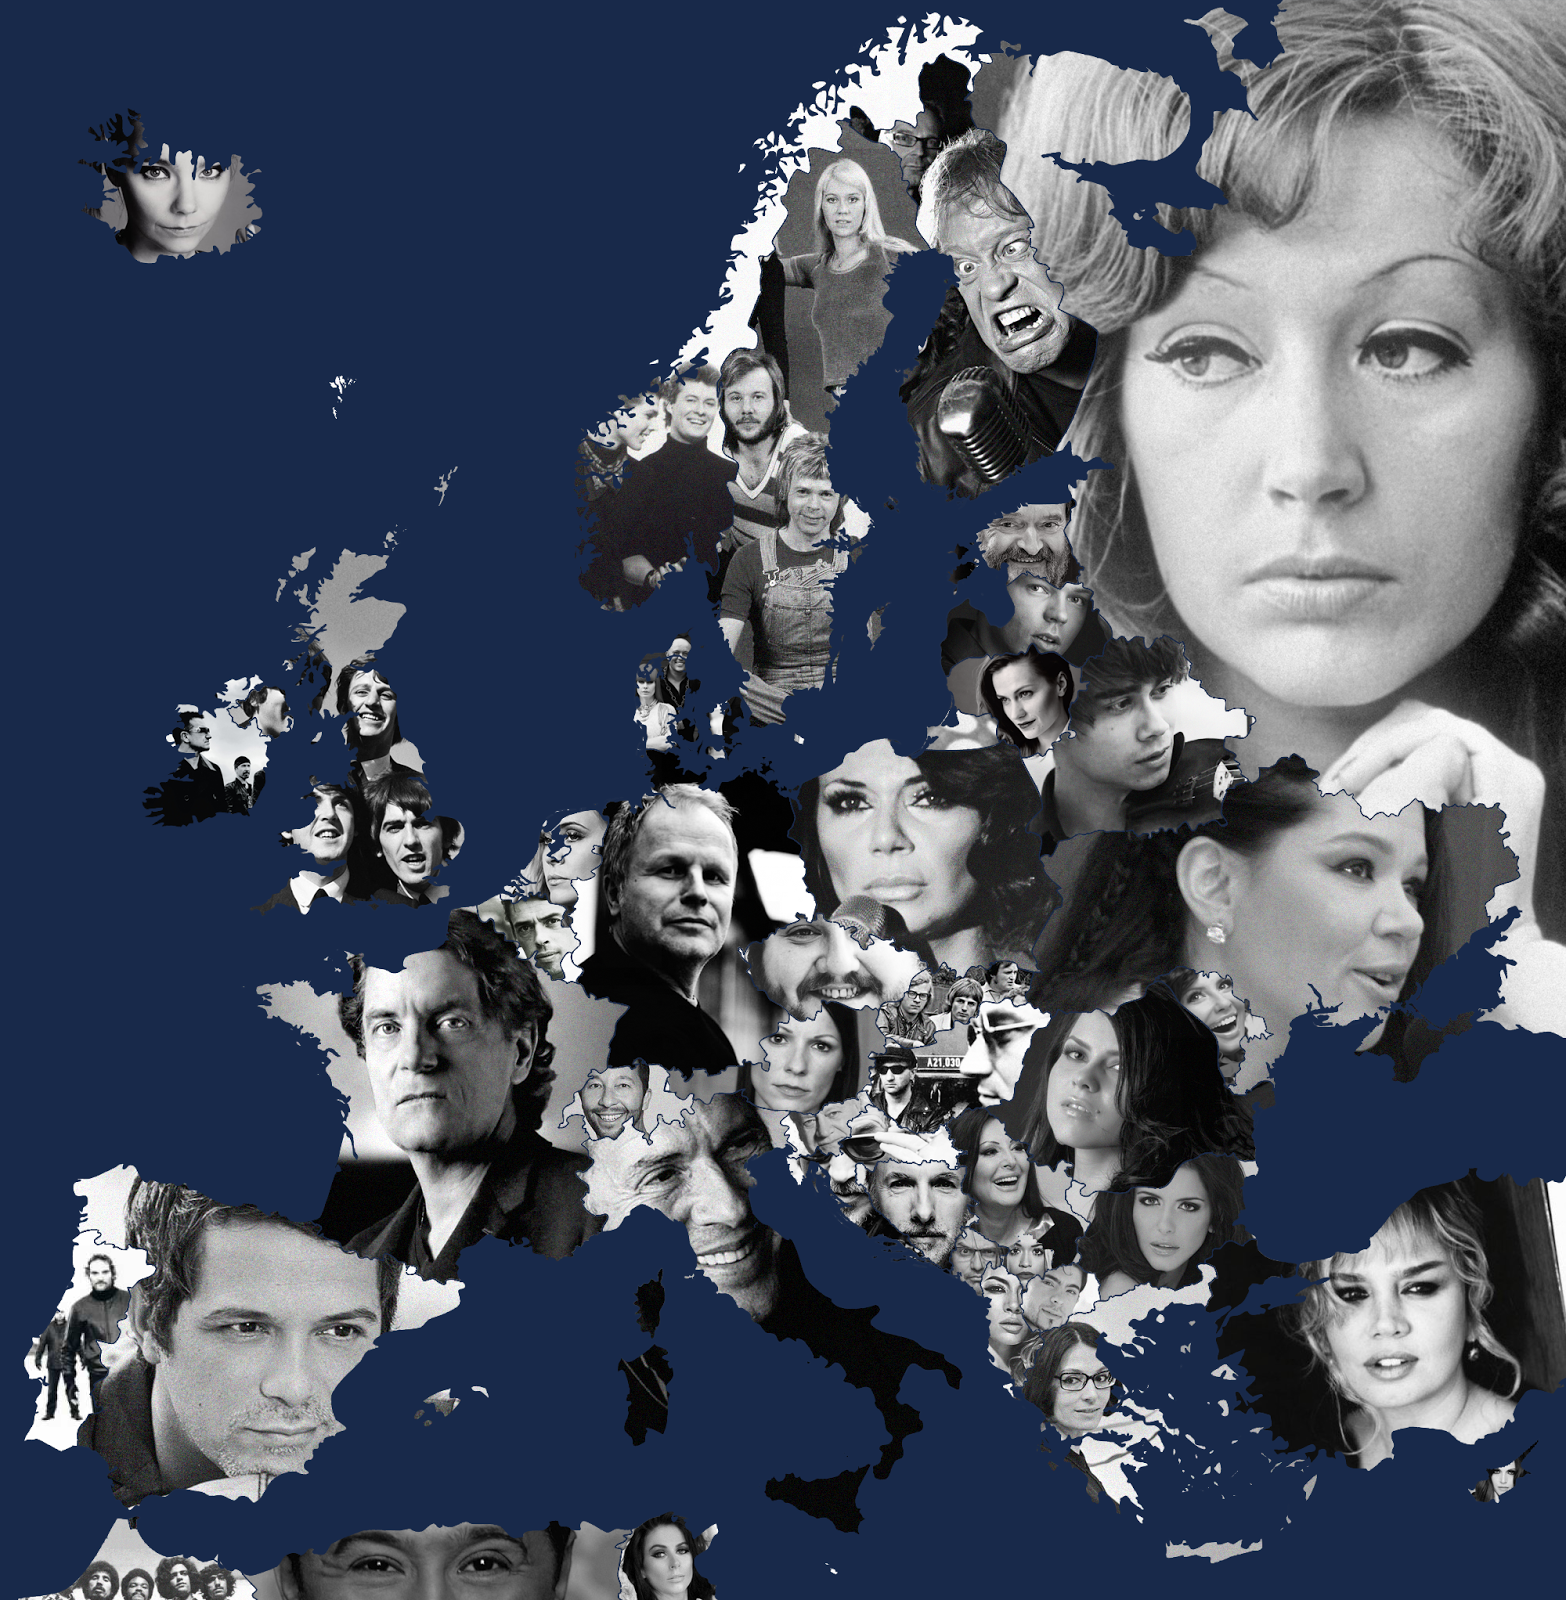 Most successful music artist from each European country